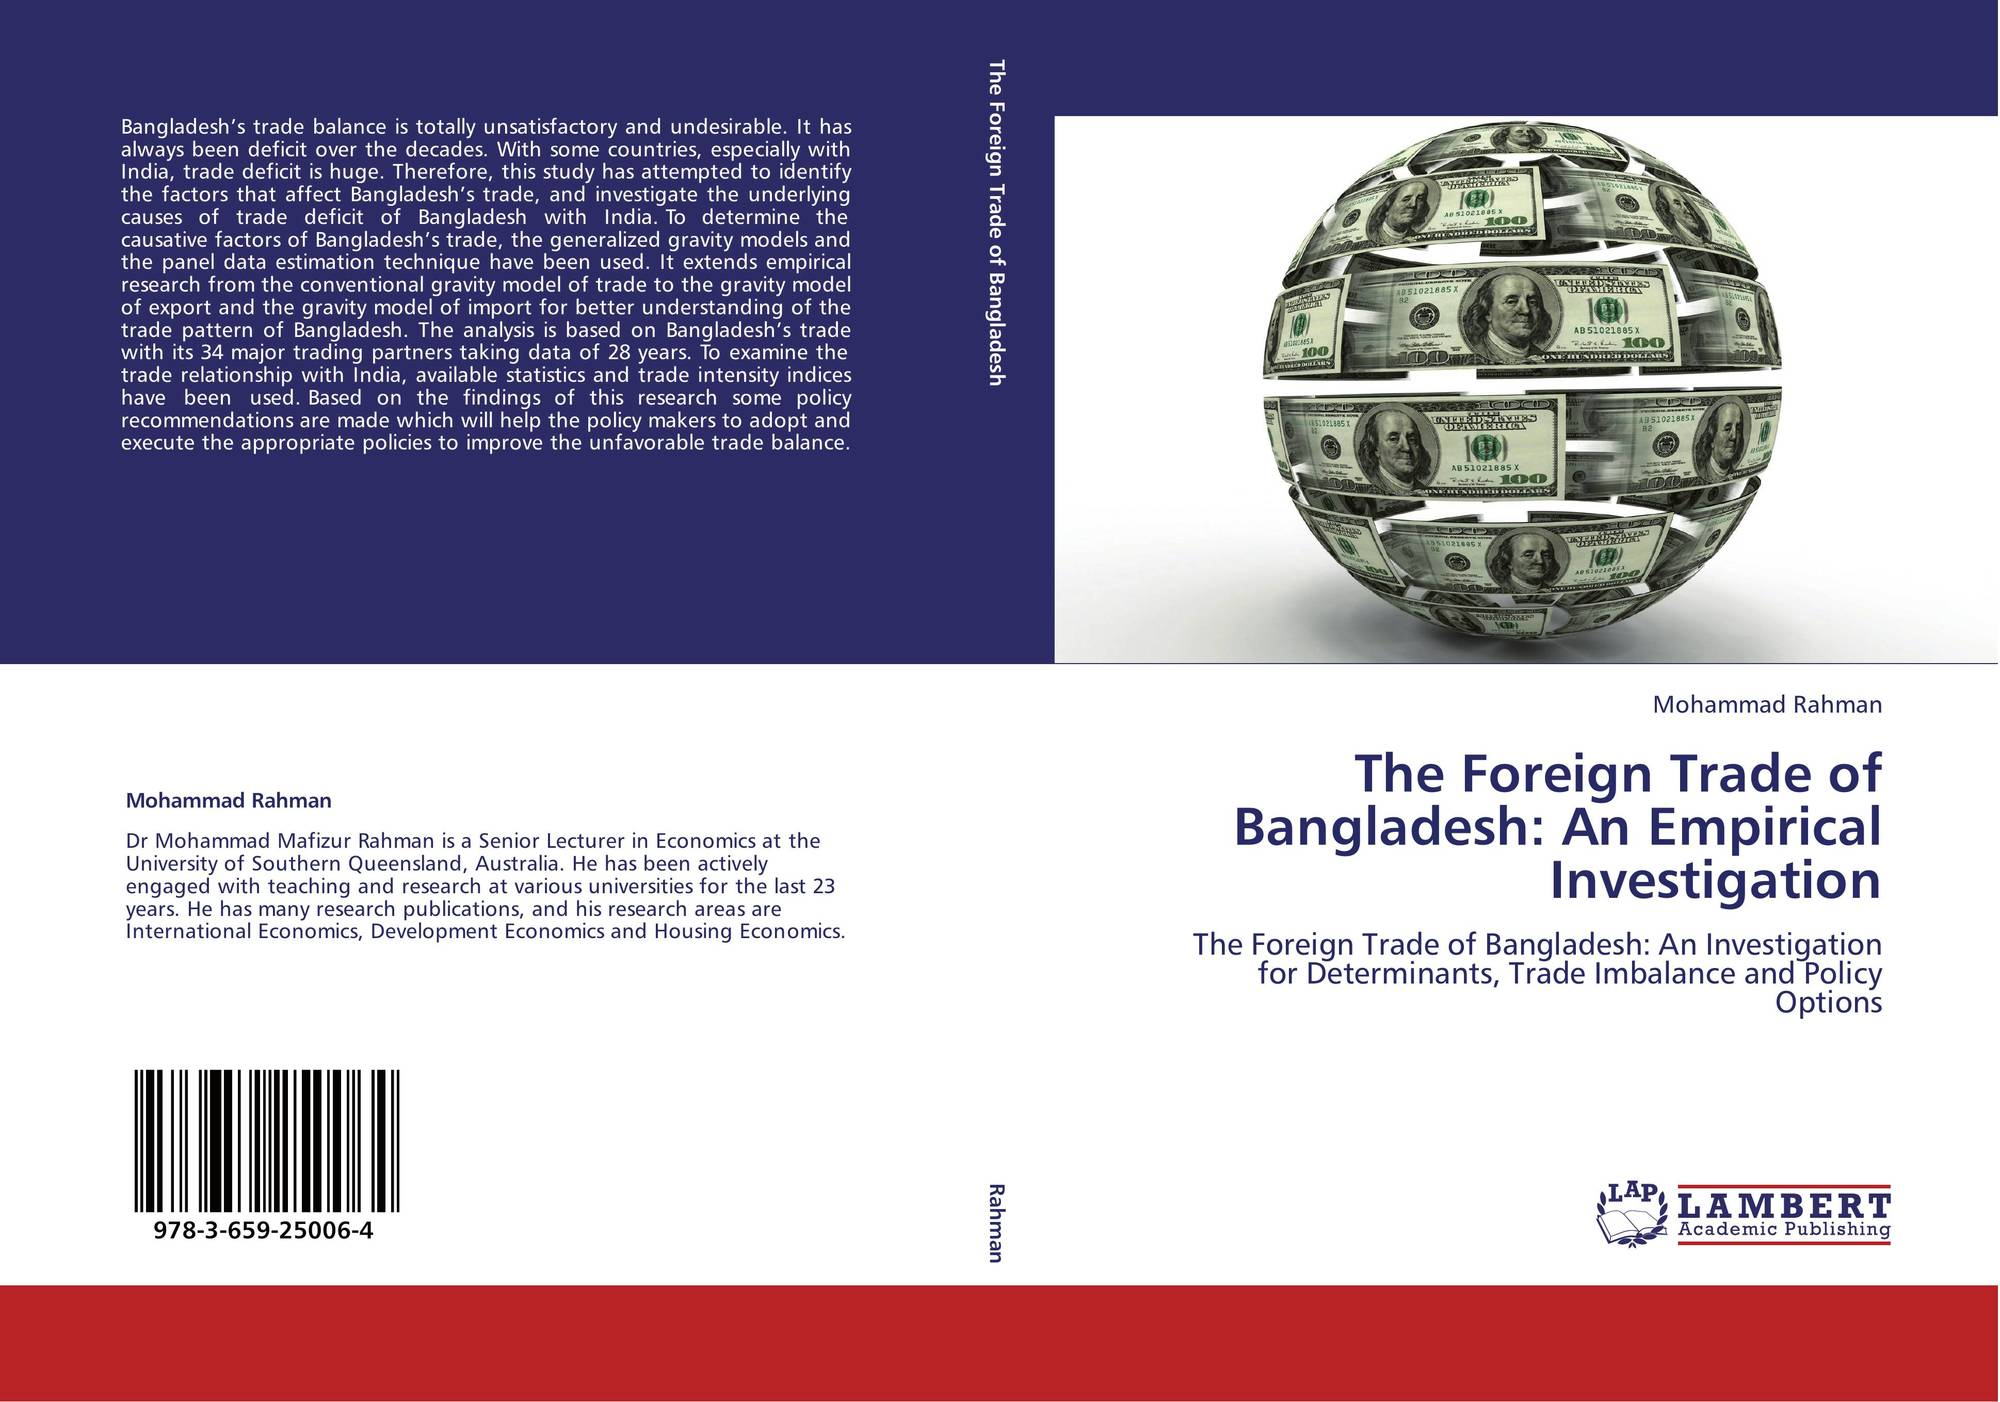 the foreign trade of bangladesh its composition performance trend and policy essay Participation of developing countries in world trade: overview of major trends and underlying factors note by the secretariat summary and conclusions this paper.